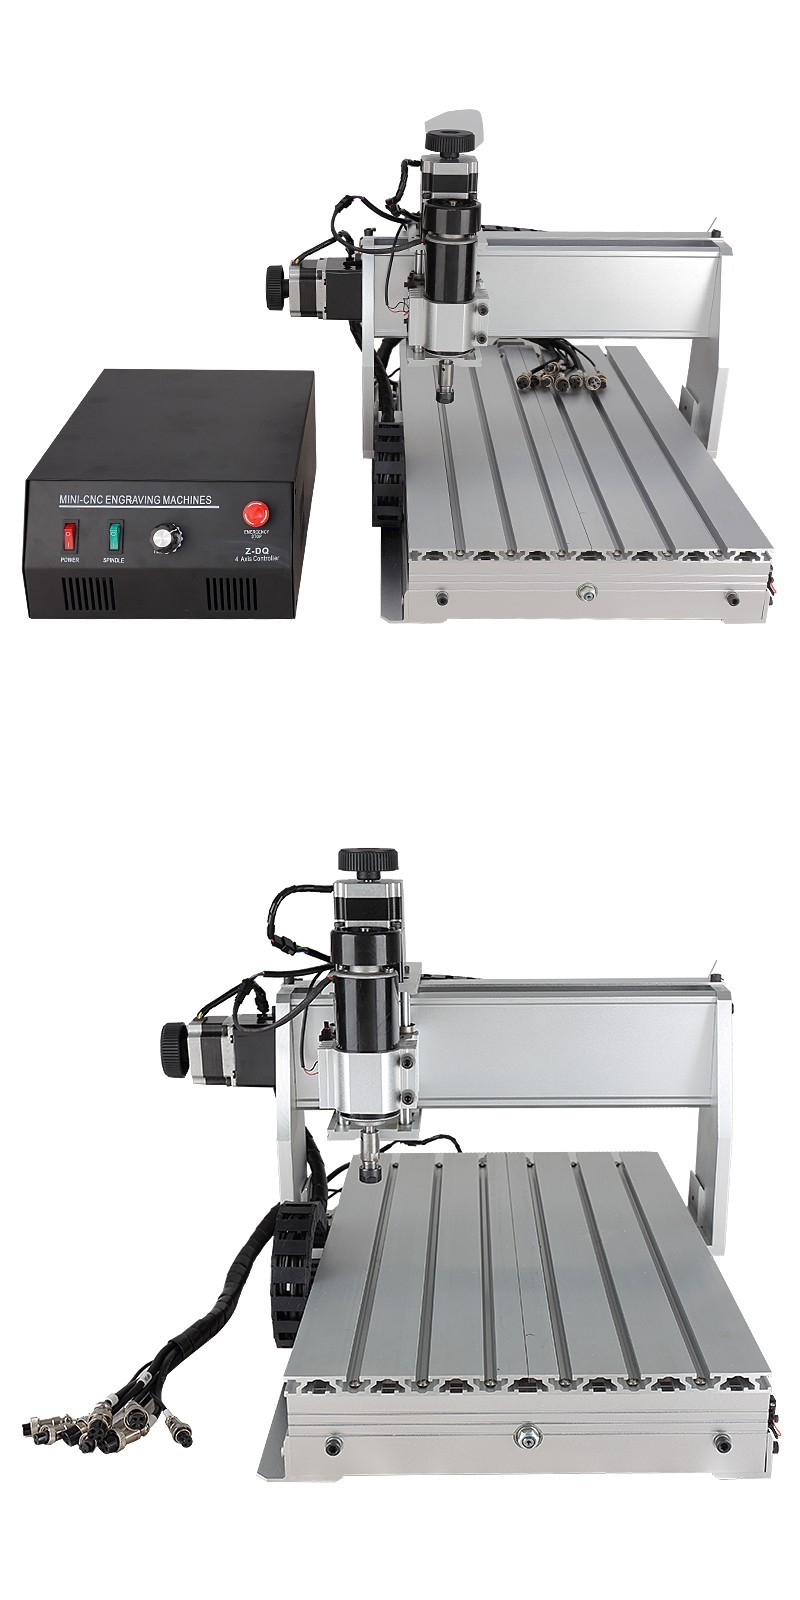 Hot Sale CNC 3040 Z-DQ mini 3D 4 Axis Carving Milling Engraving Wood CNC Router Machine